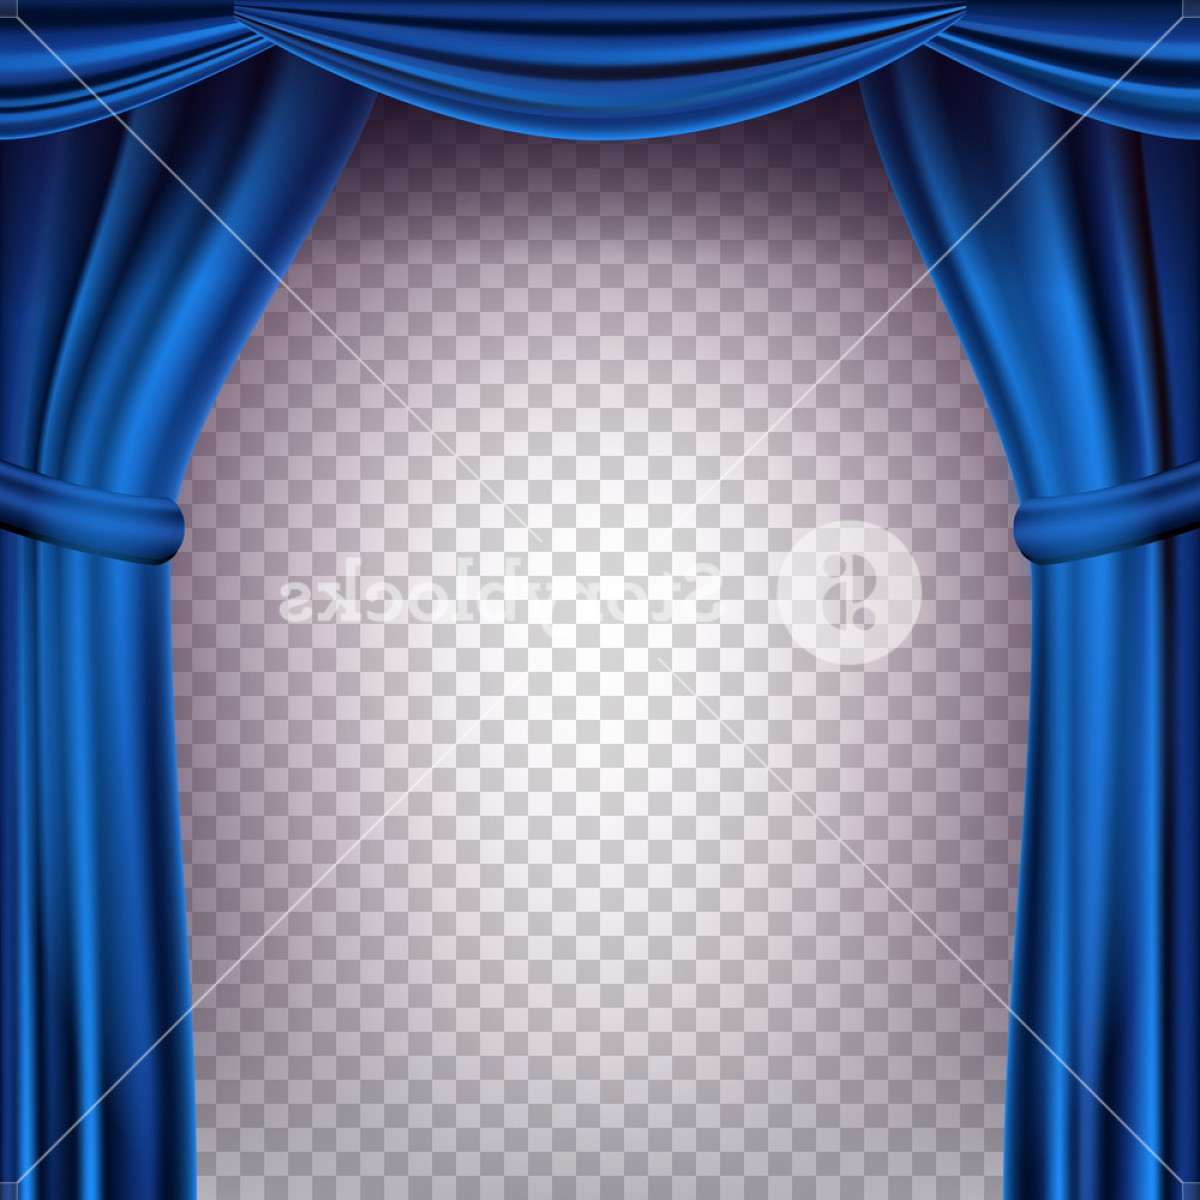 Stage Curtain Vector: Blue Theater Curtain Vector Transparent Background Banner For Concert Party Theater Dance Template Realistic Illustration Sbcaqvvfjduc